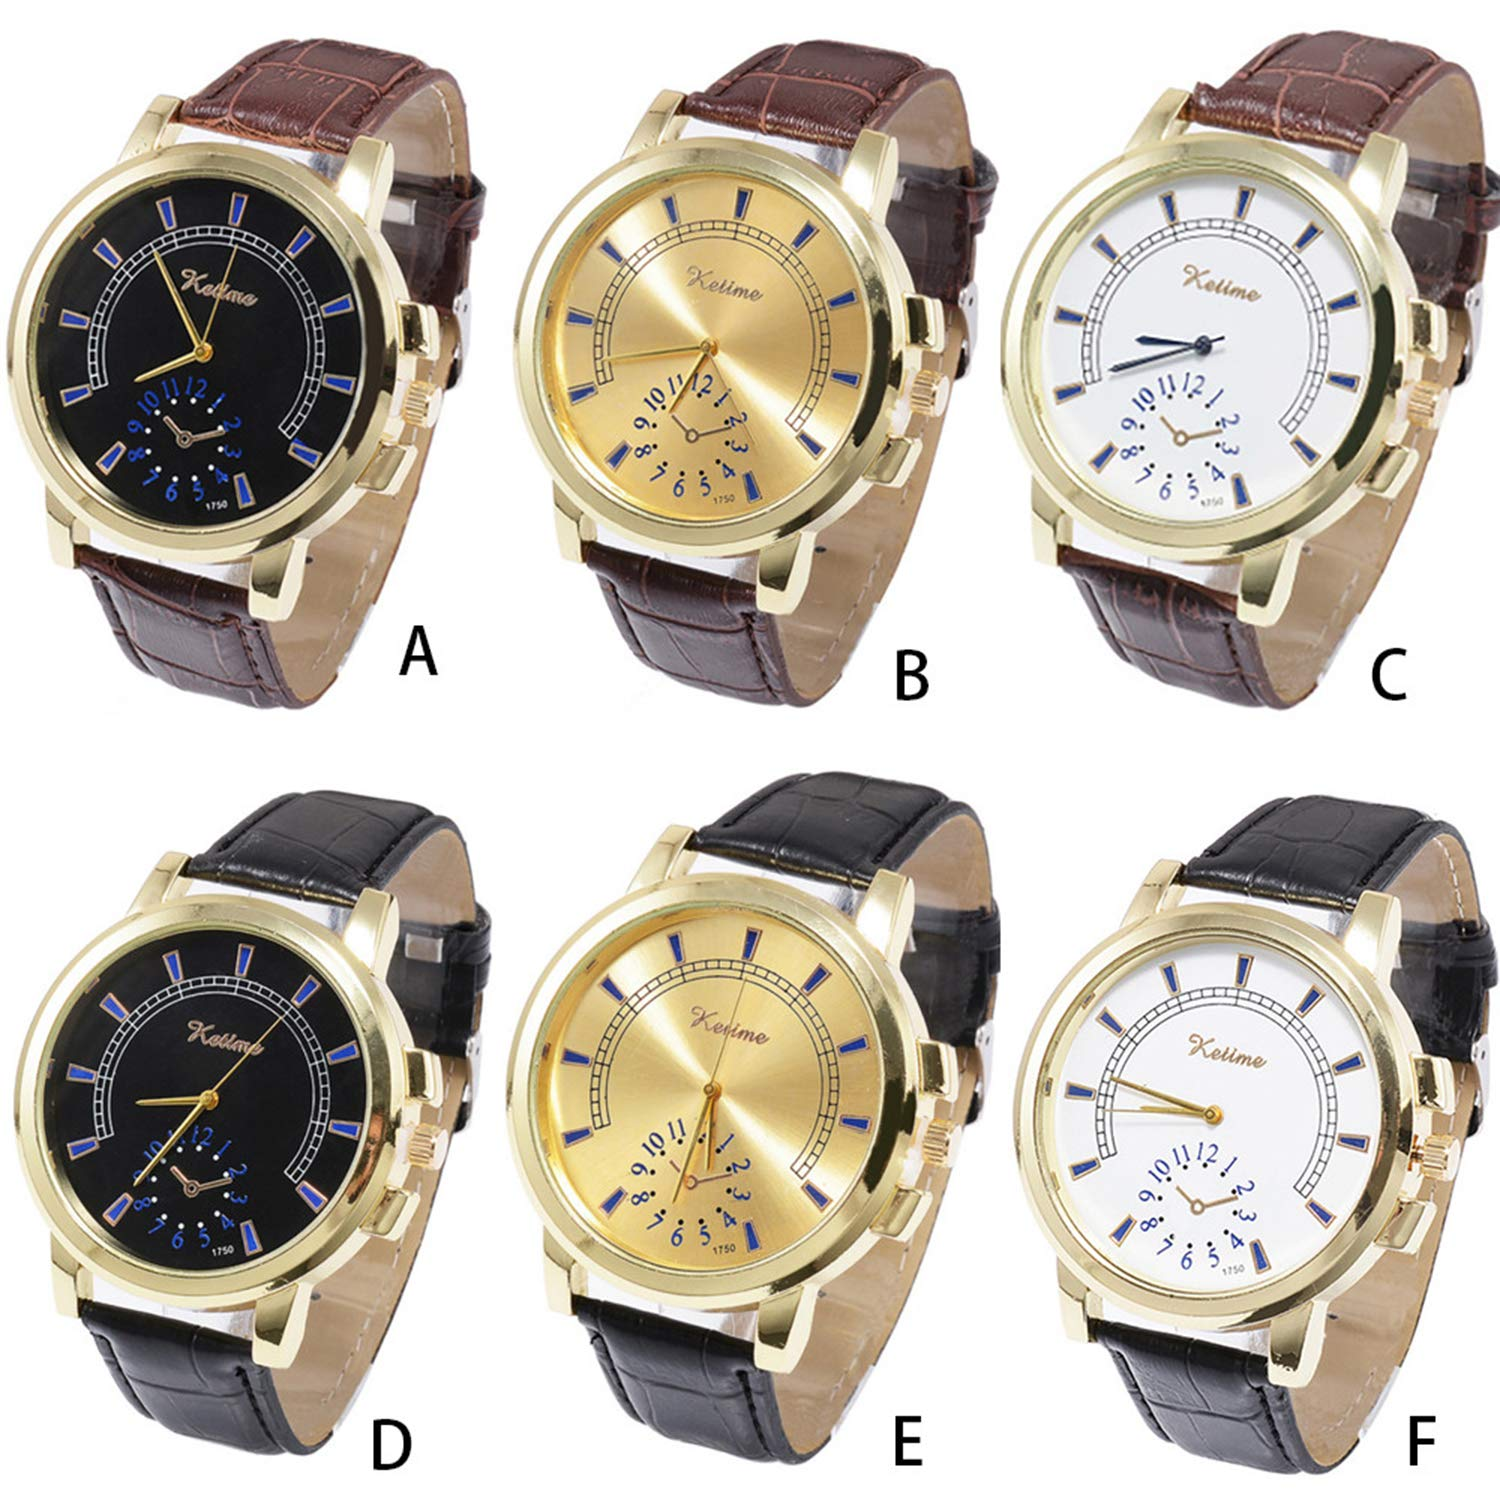 Amazon.com : Waist Watch Men Fashion Luxury Watch Simple Large Dial Quartz Wrist Watches Relogio Masculino Business Saat Gift Reloj Hombre : Office Products